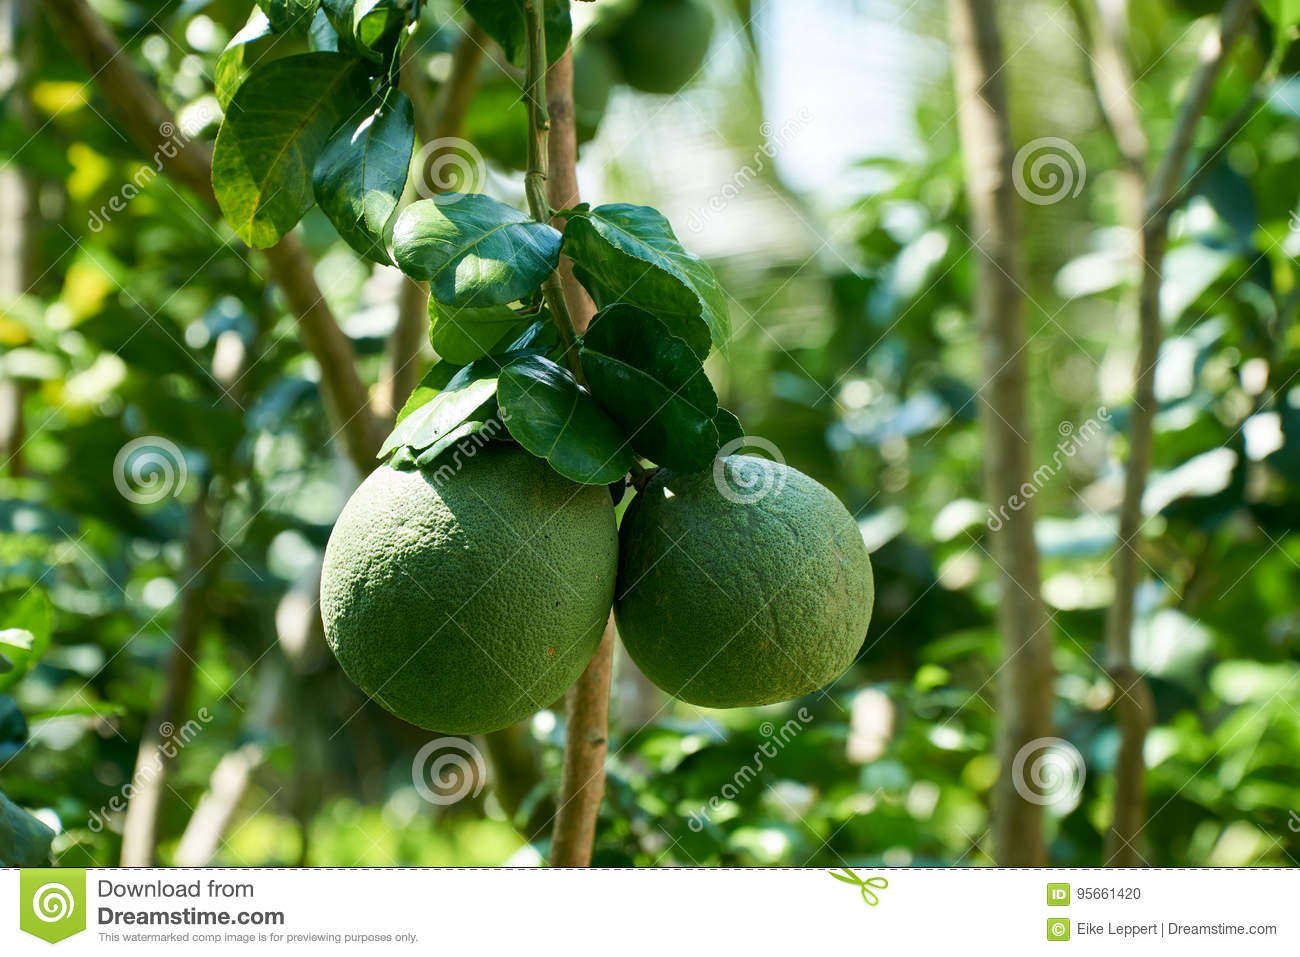 How grows pomelo